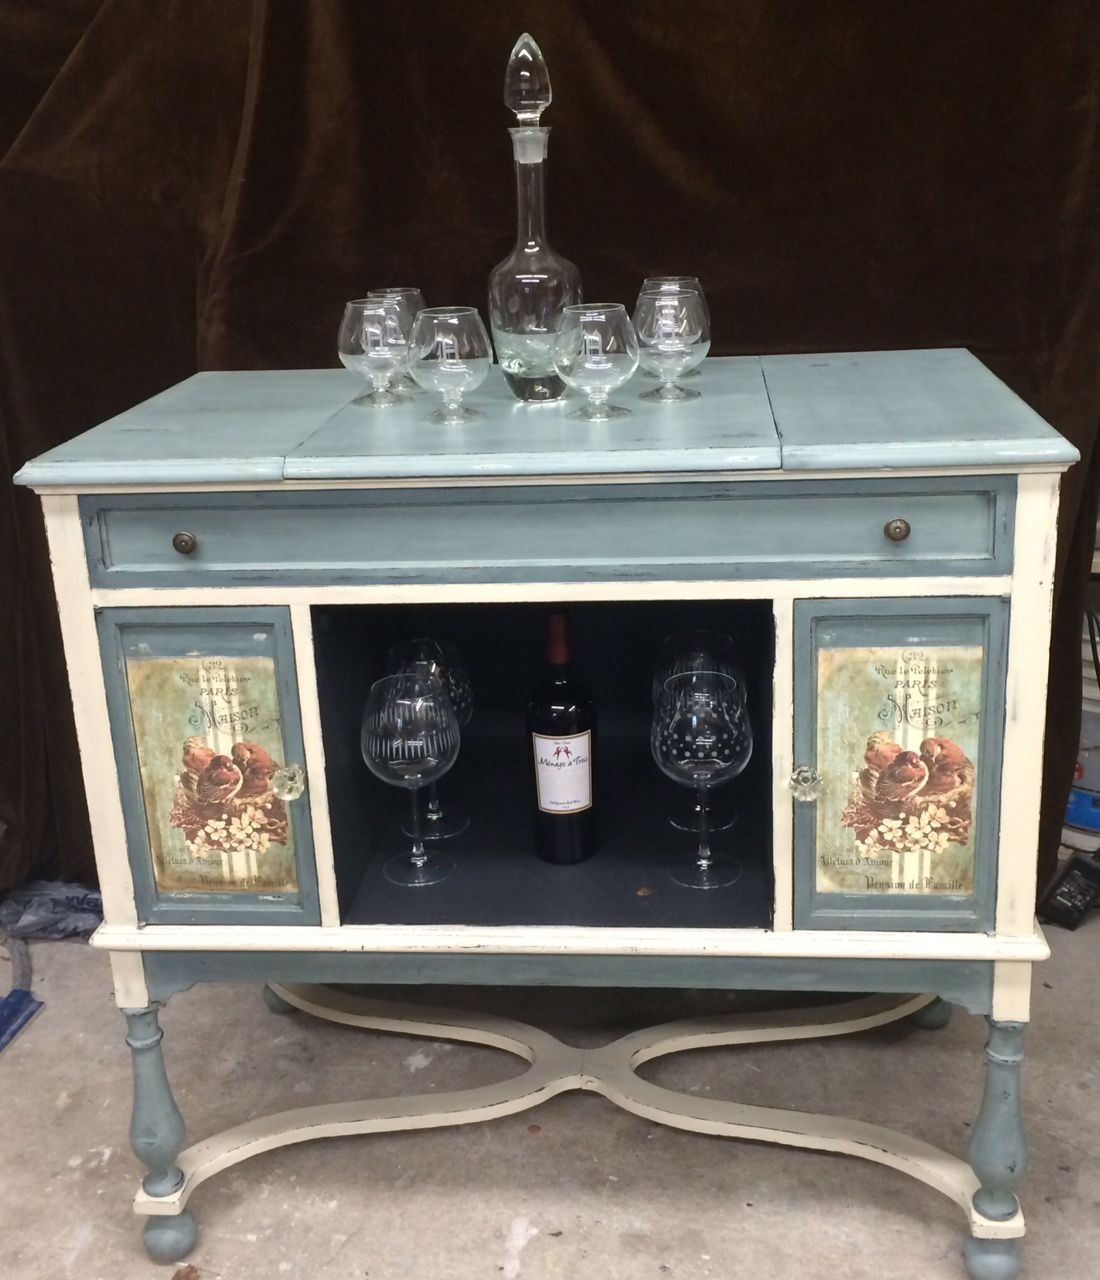 Hand Painted Antique Record Player Cabinet Painted Furniture Antique Furniture Vintage Furniture Antique